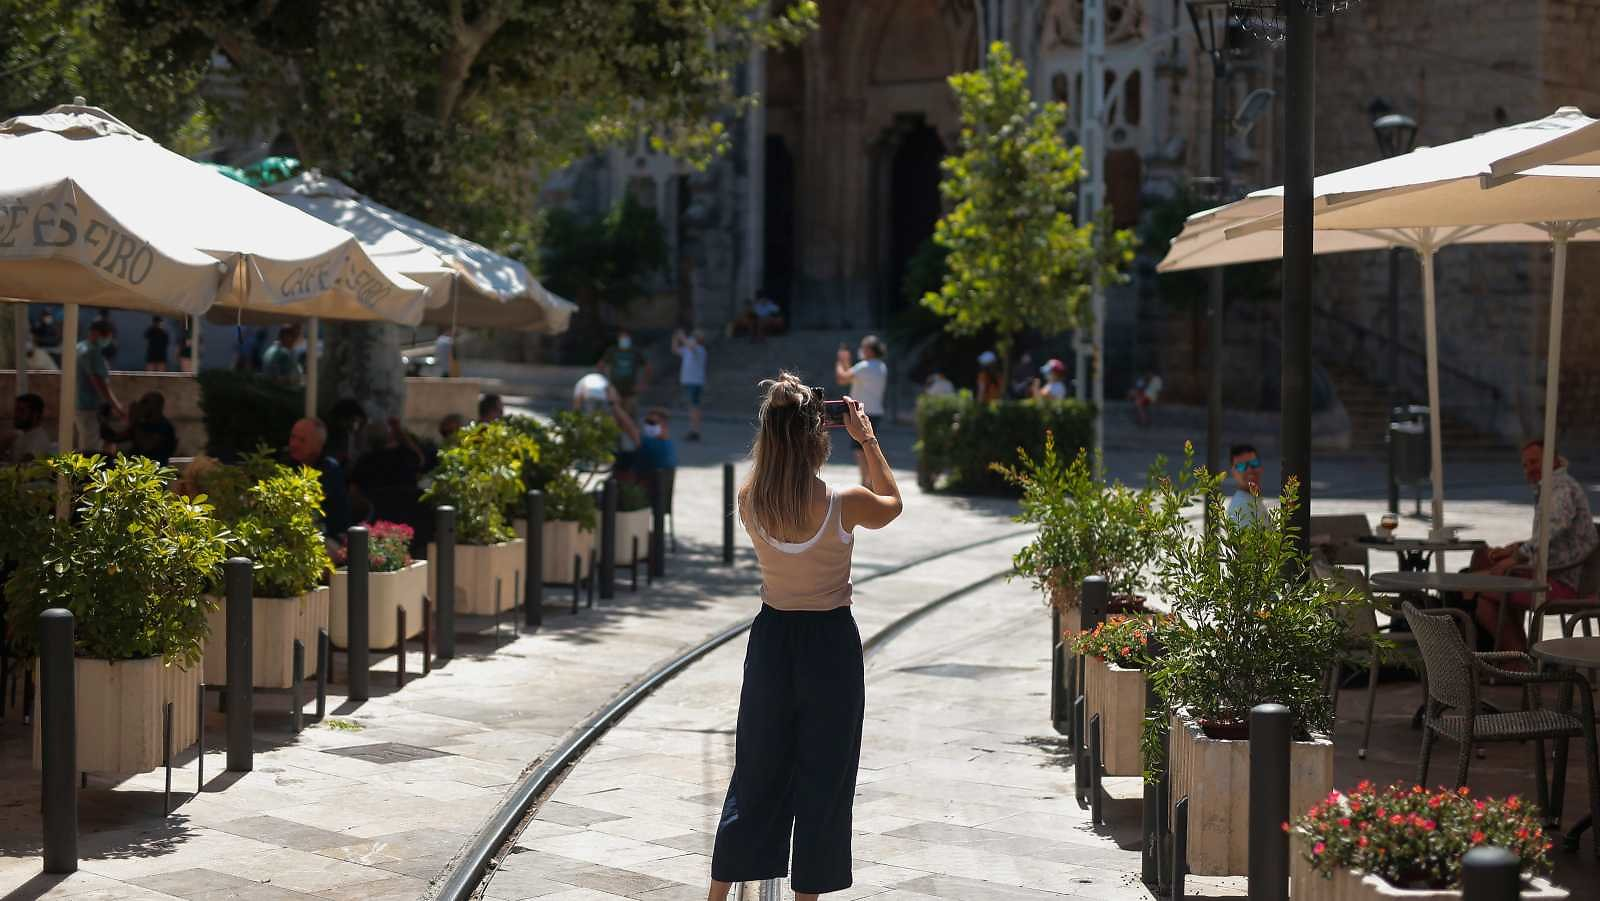 European Tourism Faces Turbulence Only Weeks After Restart